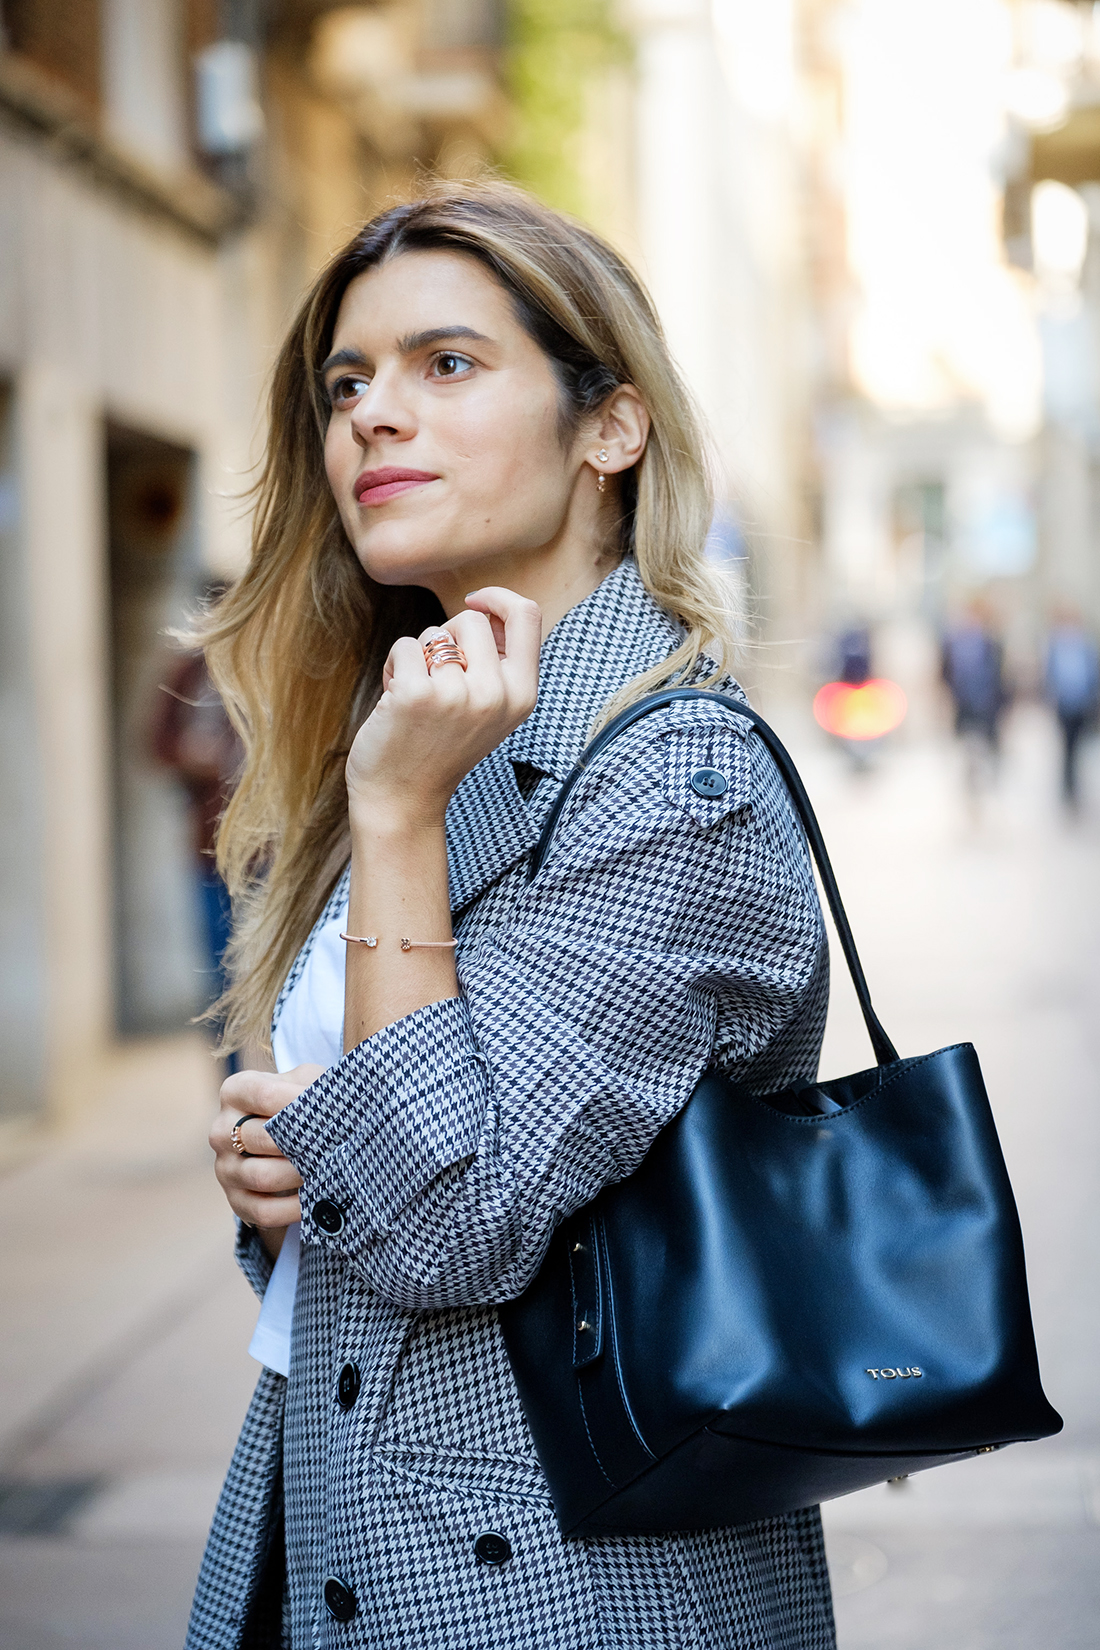 bolso_tous con joyas_Tous_jewelry y trench coat marca FInd_Amazon silviaboschblog